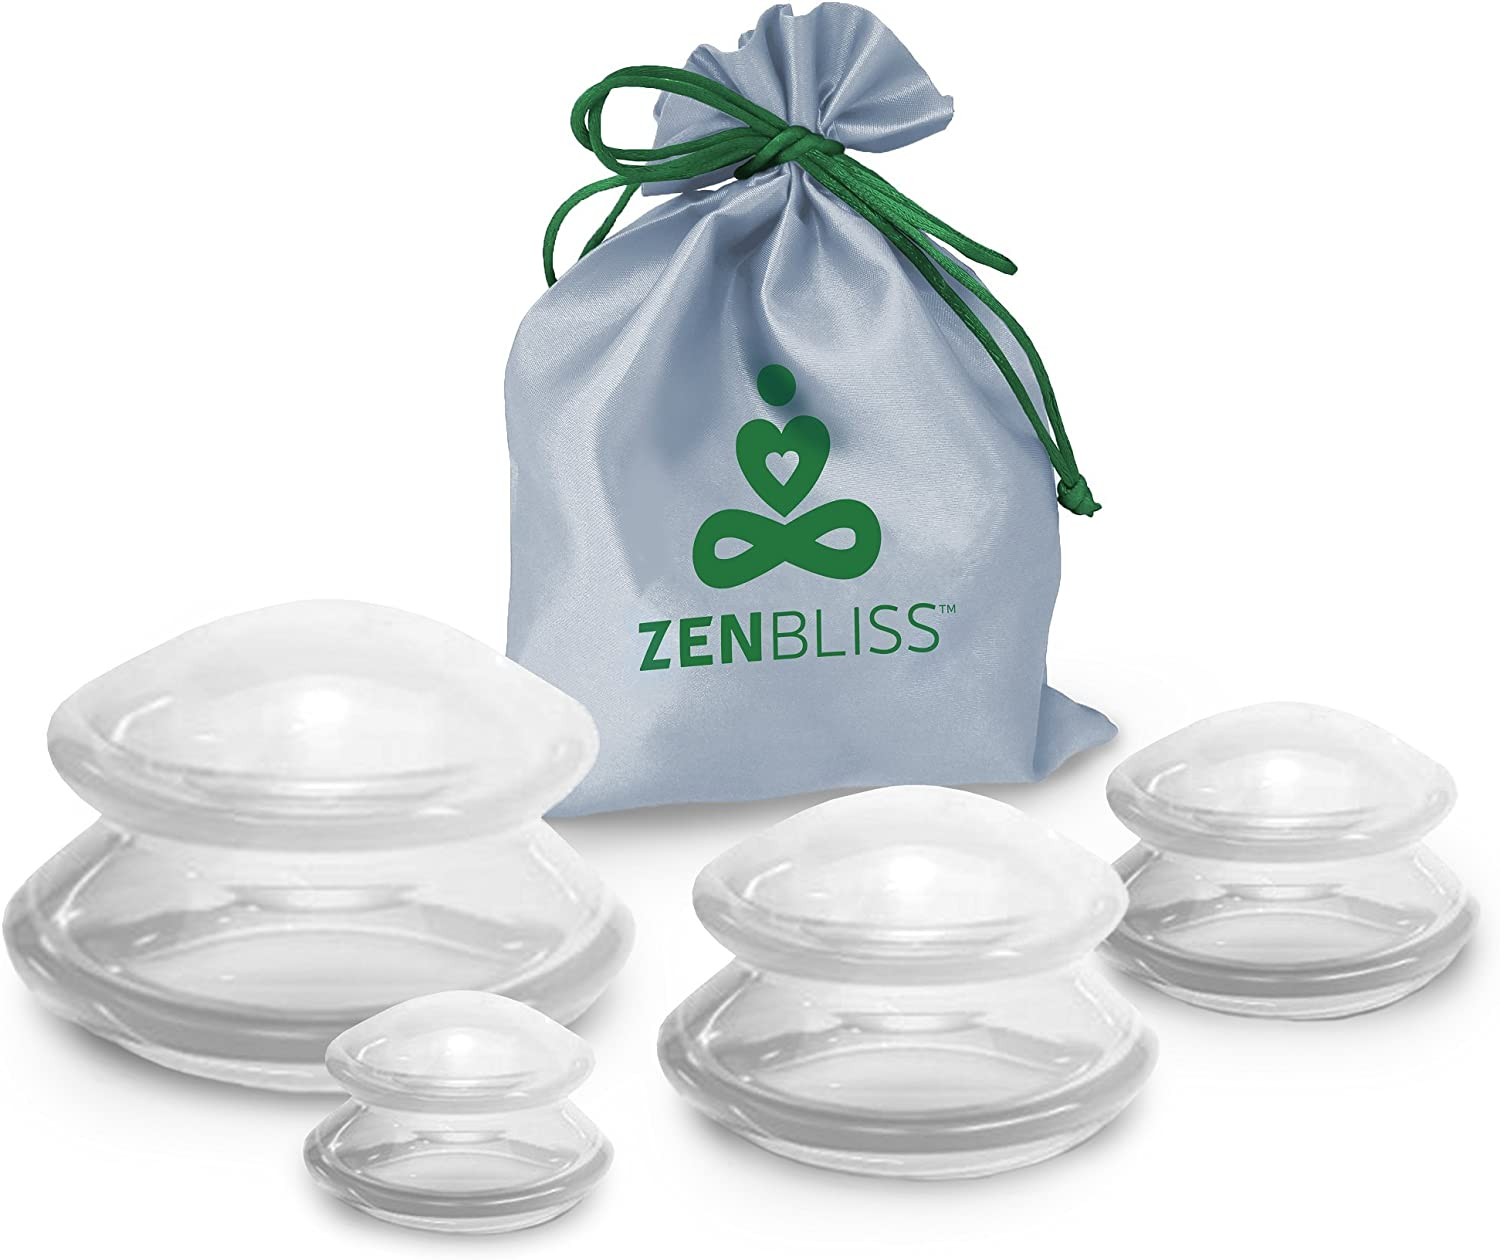 Cupping Therapy Sets - Massage Cups and 2021 spring and summer new 1 year warranty Anti for